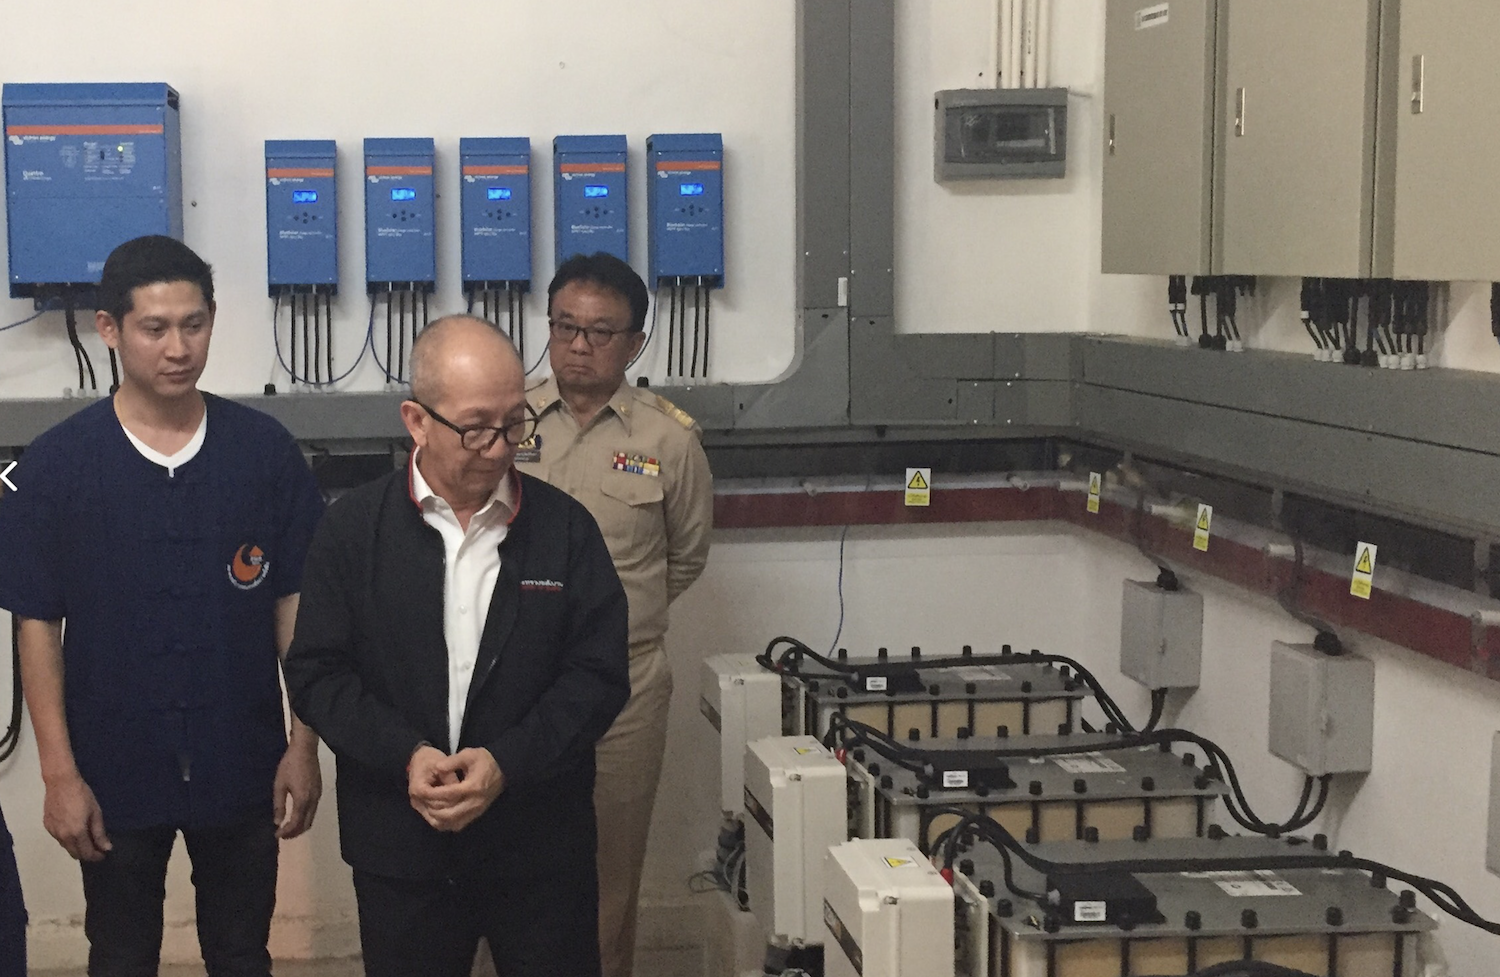 Thai Energy Minister visits the new microgrid and energy storage system.